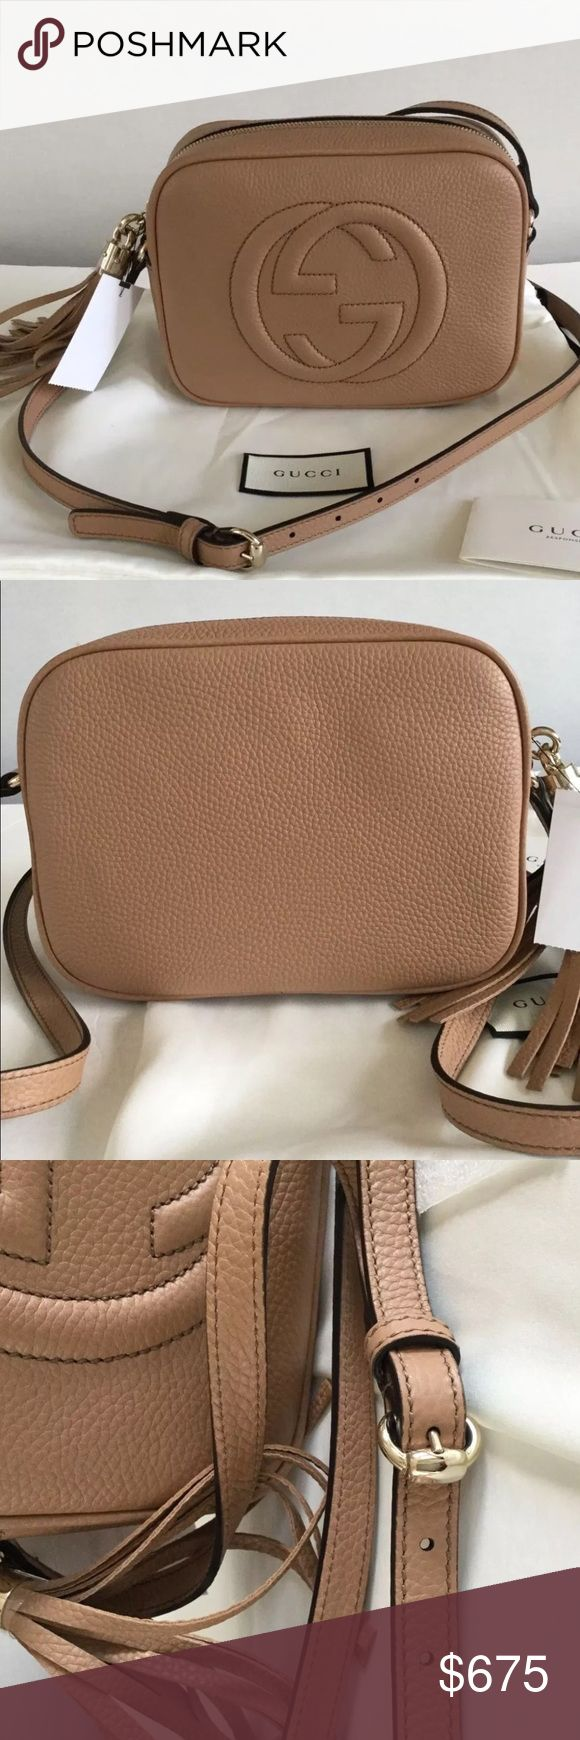 Gucci Soho Disco Crossbody Bag Beige 100% Authentic 🔺 We are a very negotiable service 🔺 We provide overnight shipping and express shipping 🔺 Our transactions are made through third party applications 🔺 If you are interested in buying this product please contact us via 646-431-6521 🔺 Gucci Bags Crossbody Bags